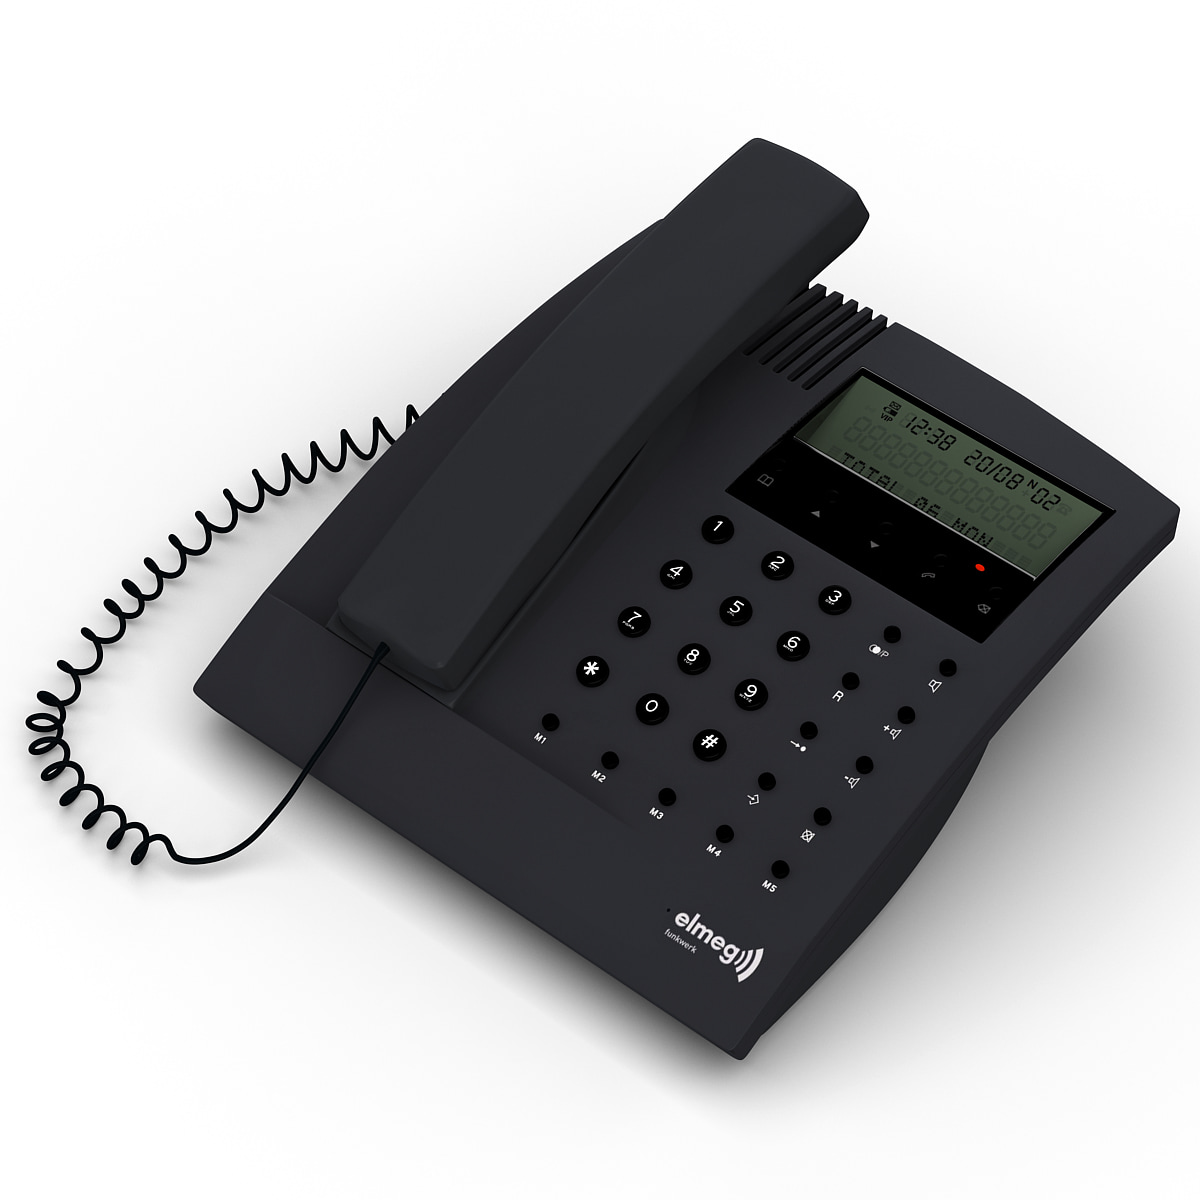 IP_Telephone_Elmeg_IP290_001.jpg